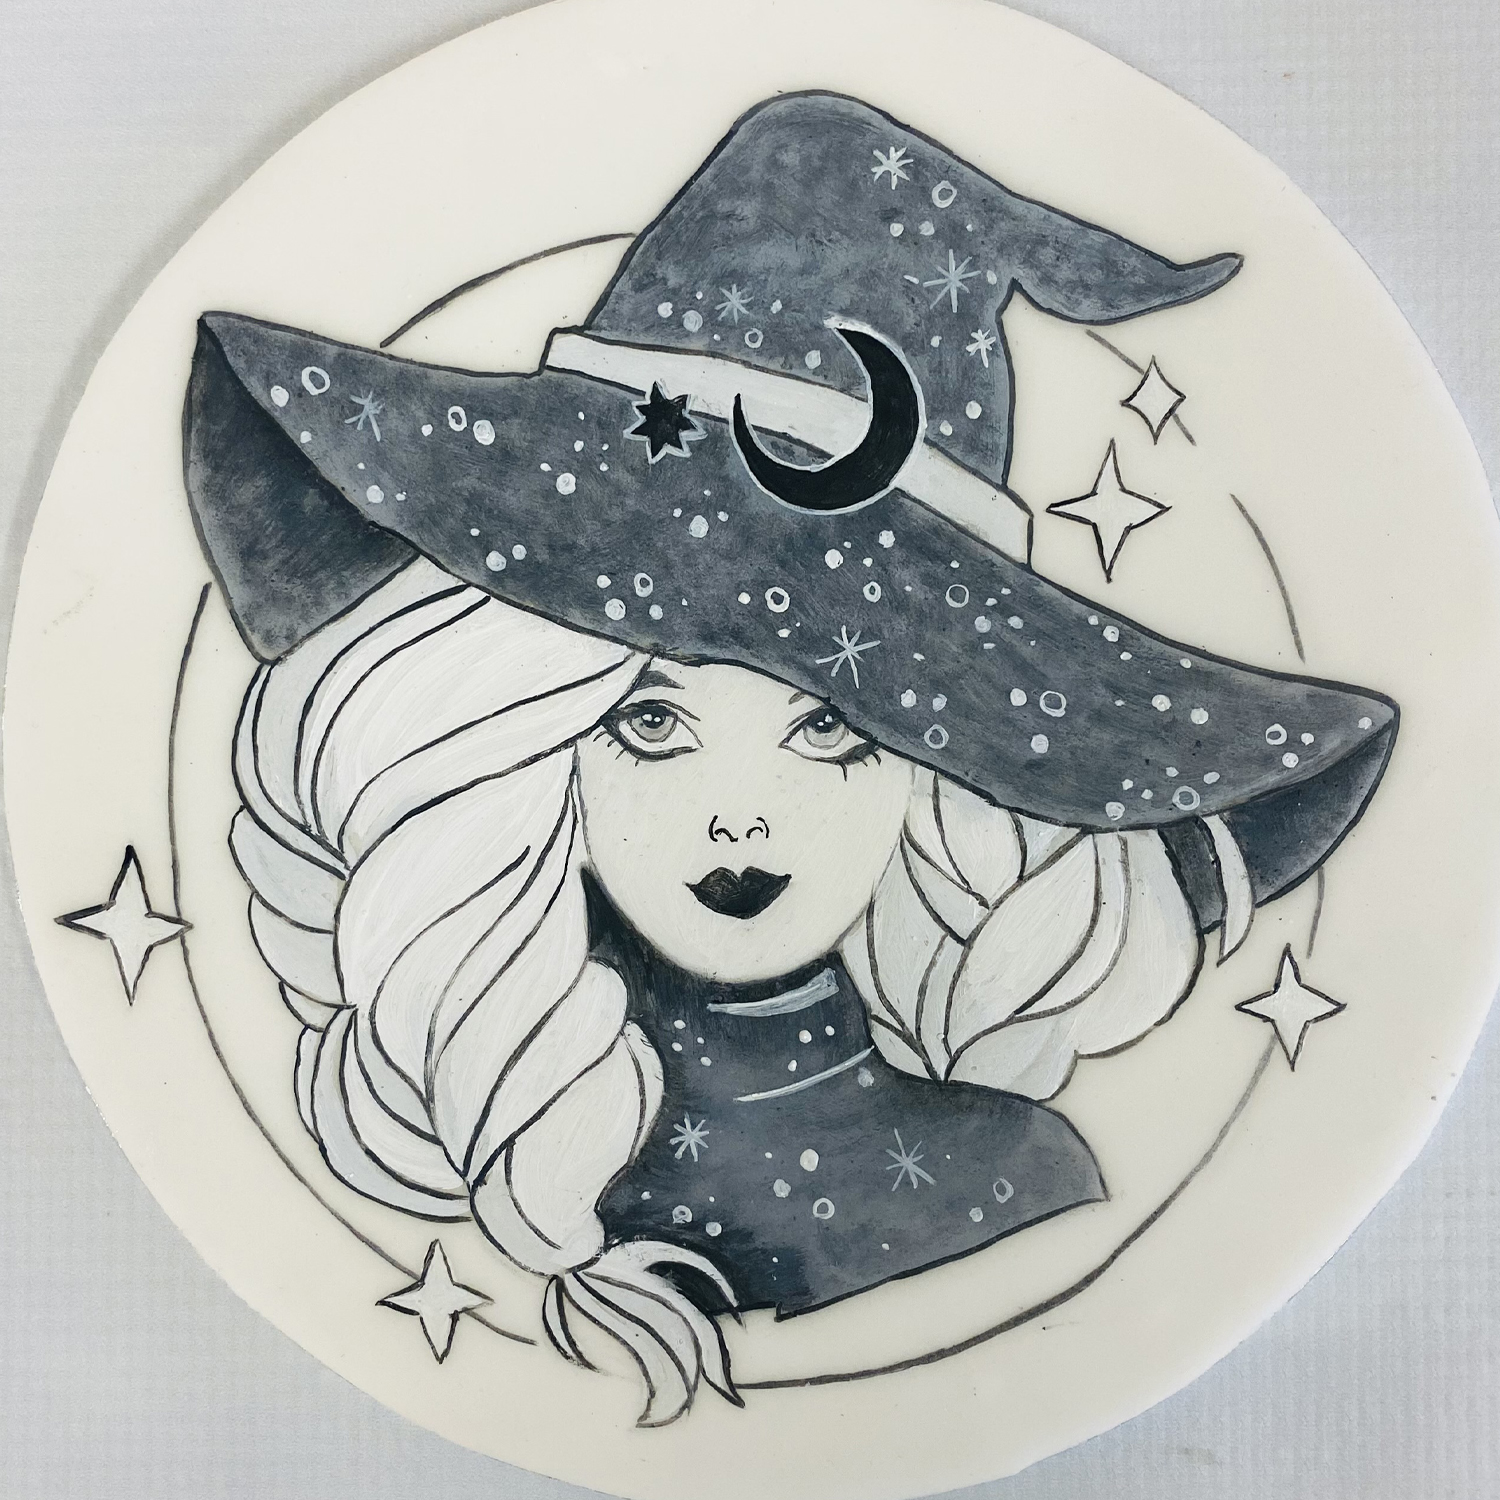 Classy Witch - available from Saturday 18th September 2021